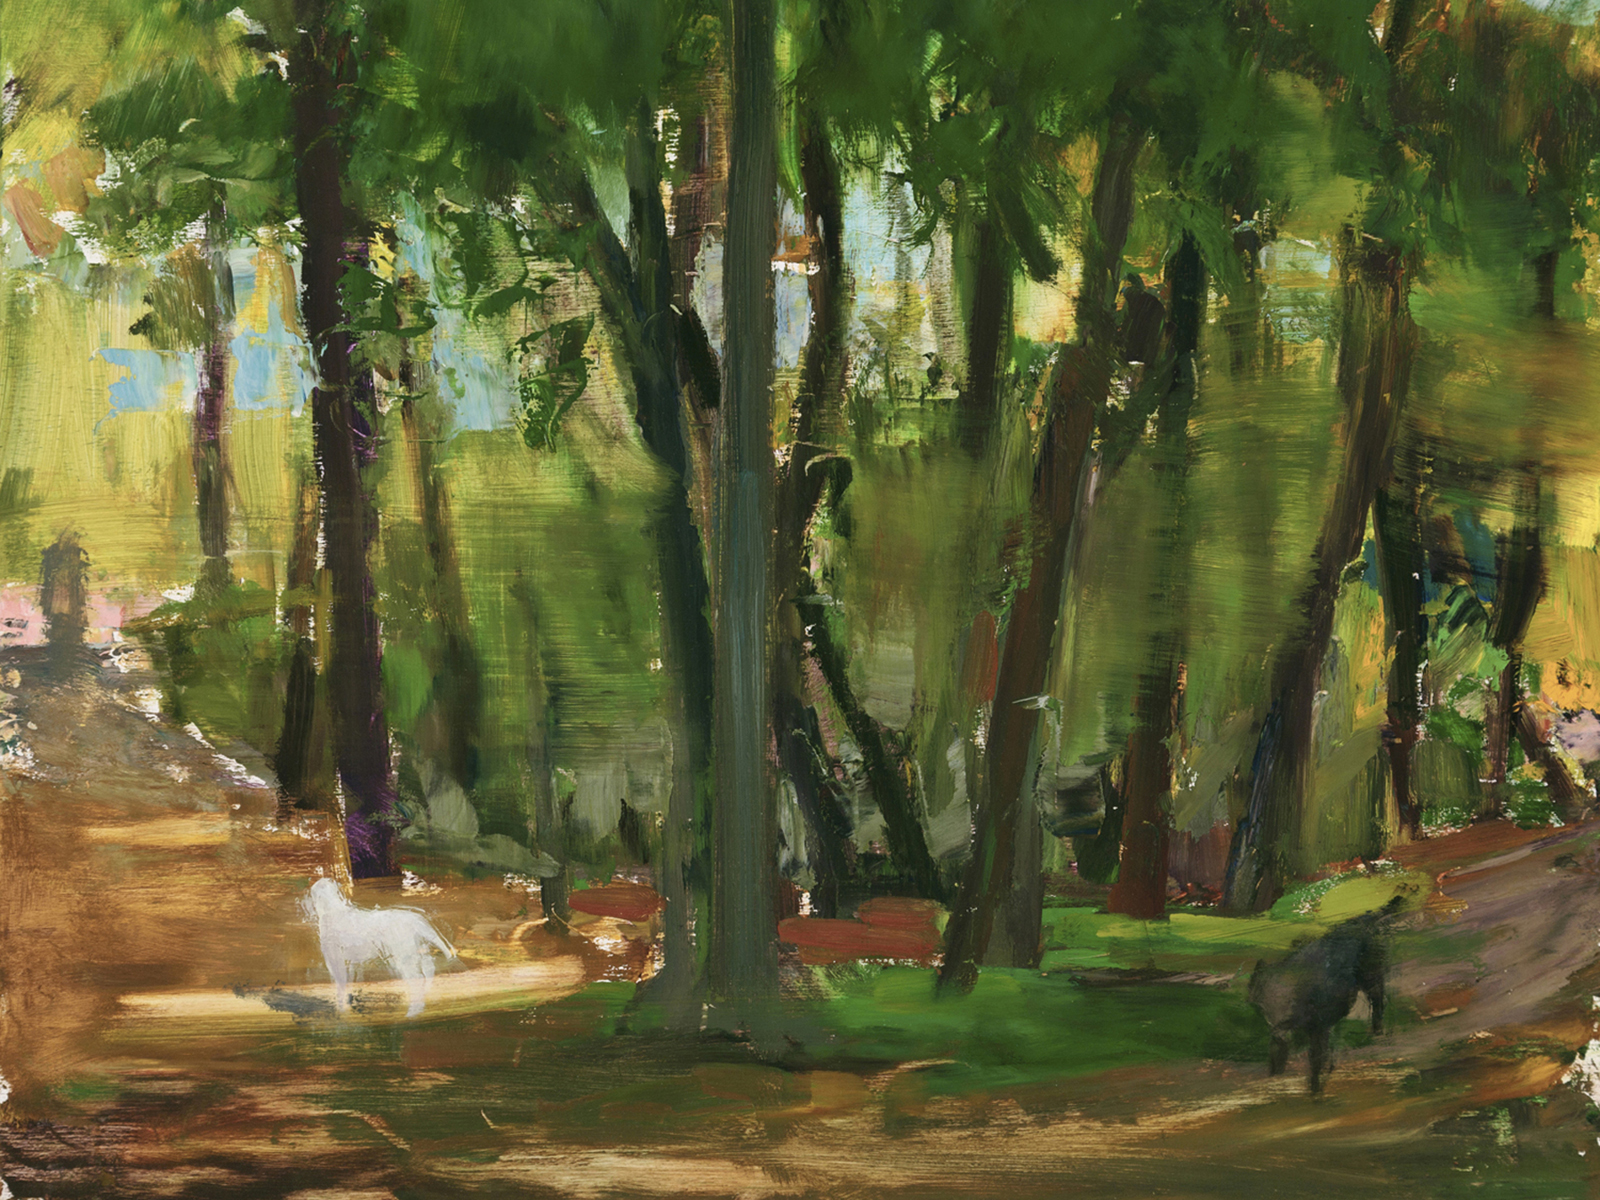 Donald Beal, Woods with Black and White Dogs, 2013 Recipient